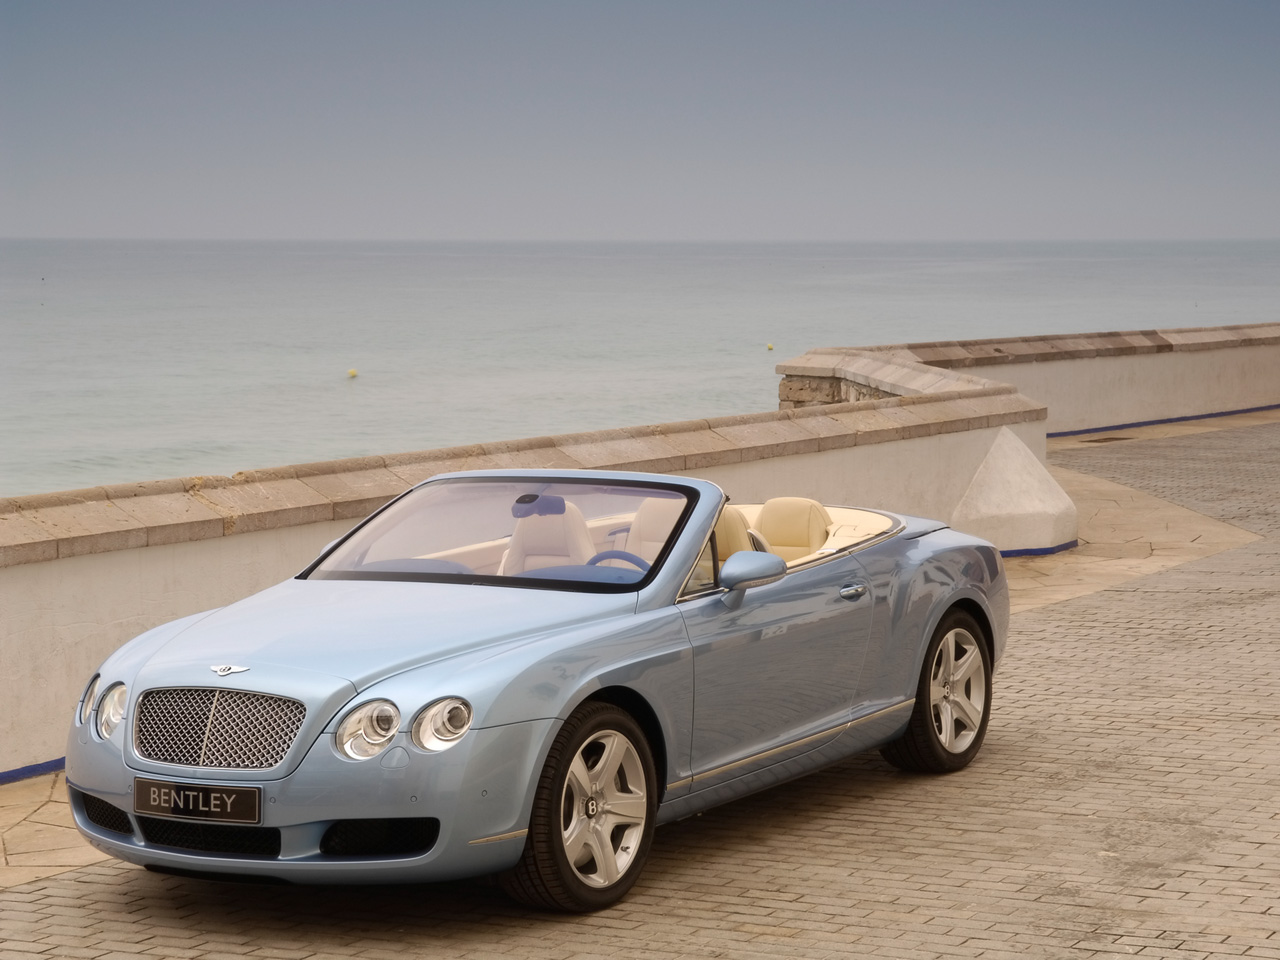 bentley continental gtc cabriolet 4 places et 300km h. Black Bedroom Furniture Sets. Home Design Ideas